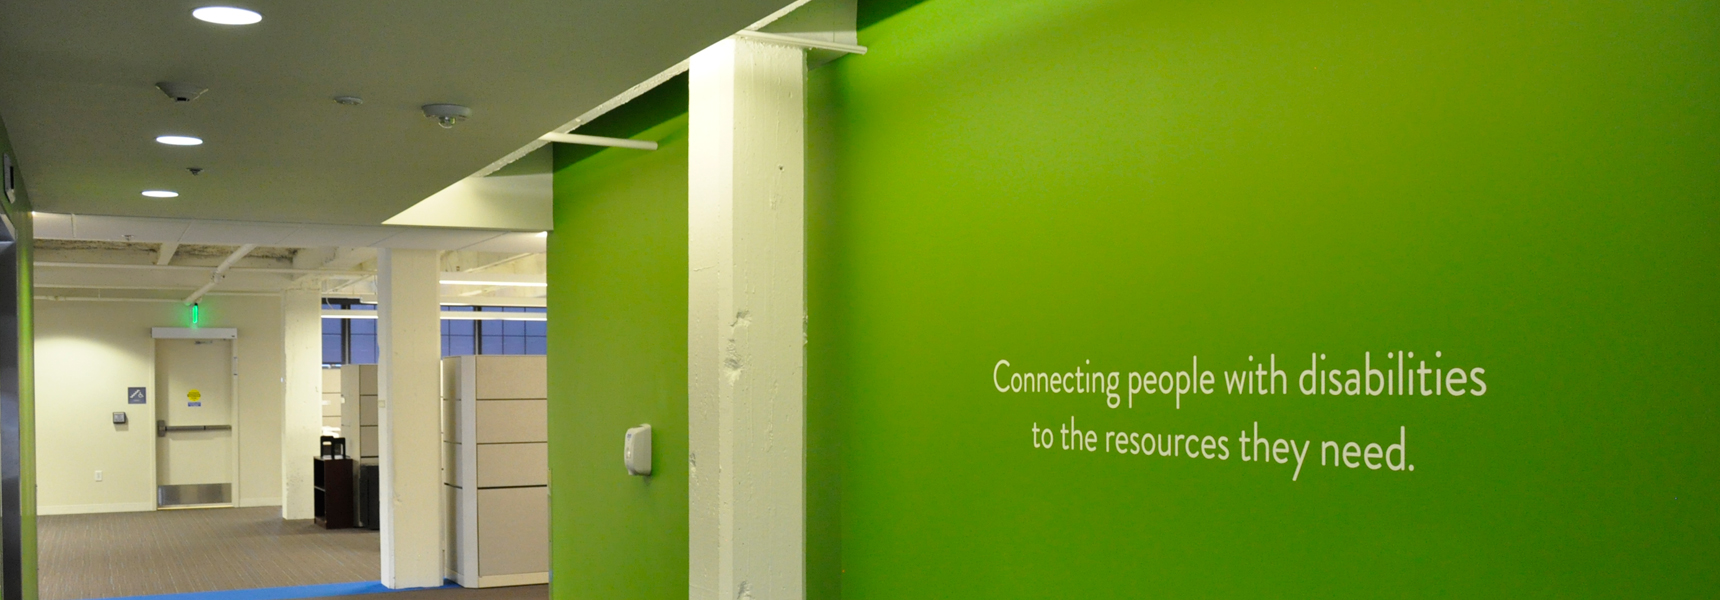 Green interior wall with TWP slogan on it